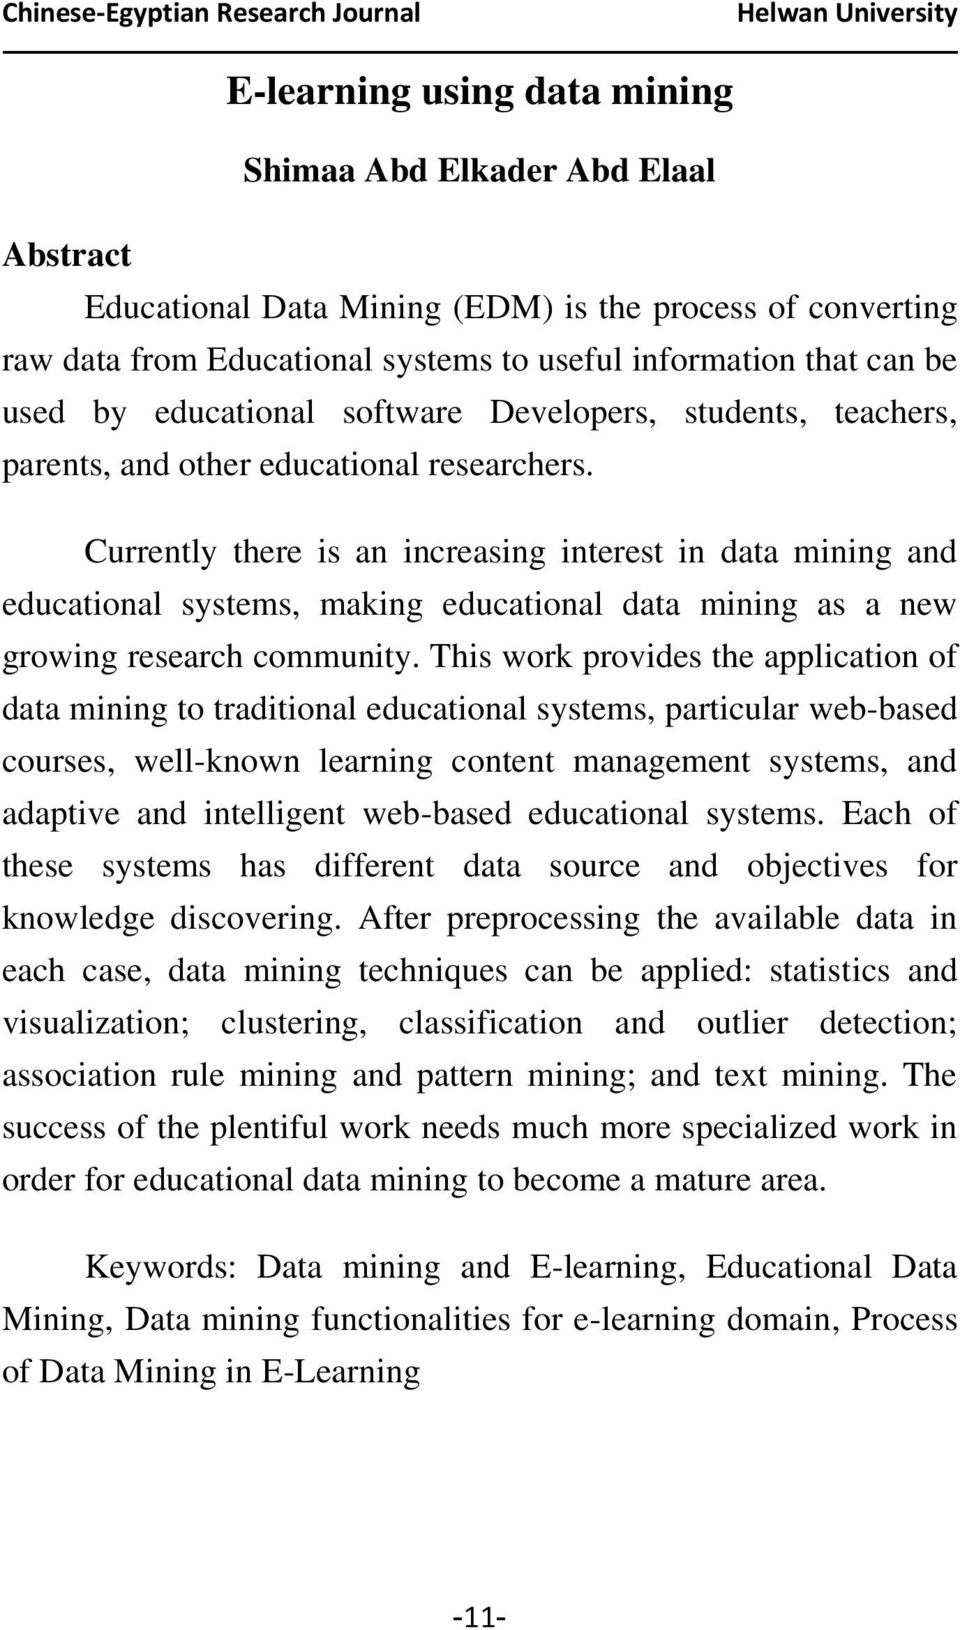 Currently there is an increasing interest in data mining and educational systems, making educational data mining as a new growing research community.